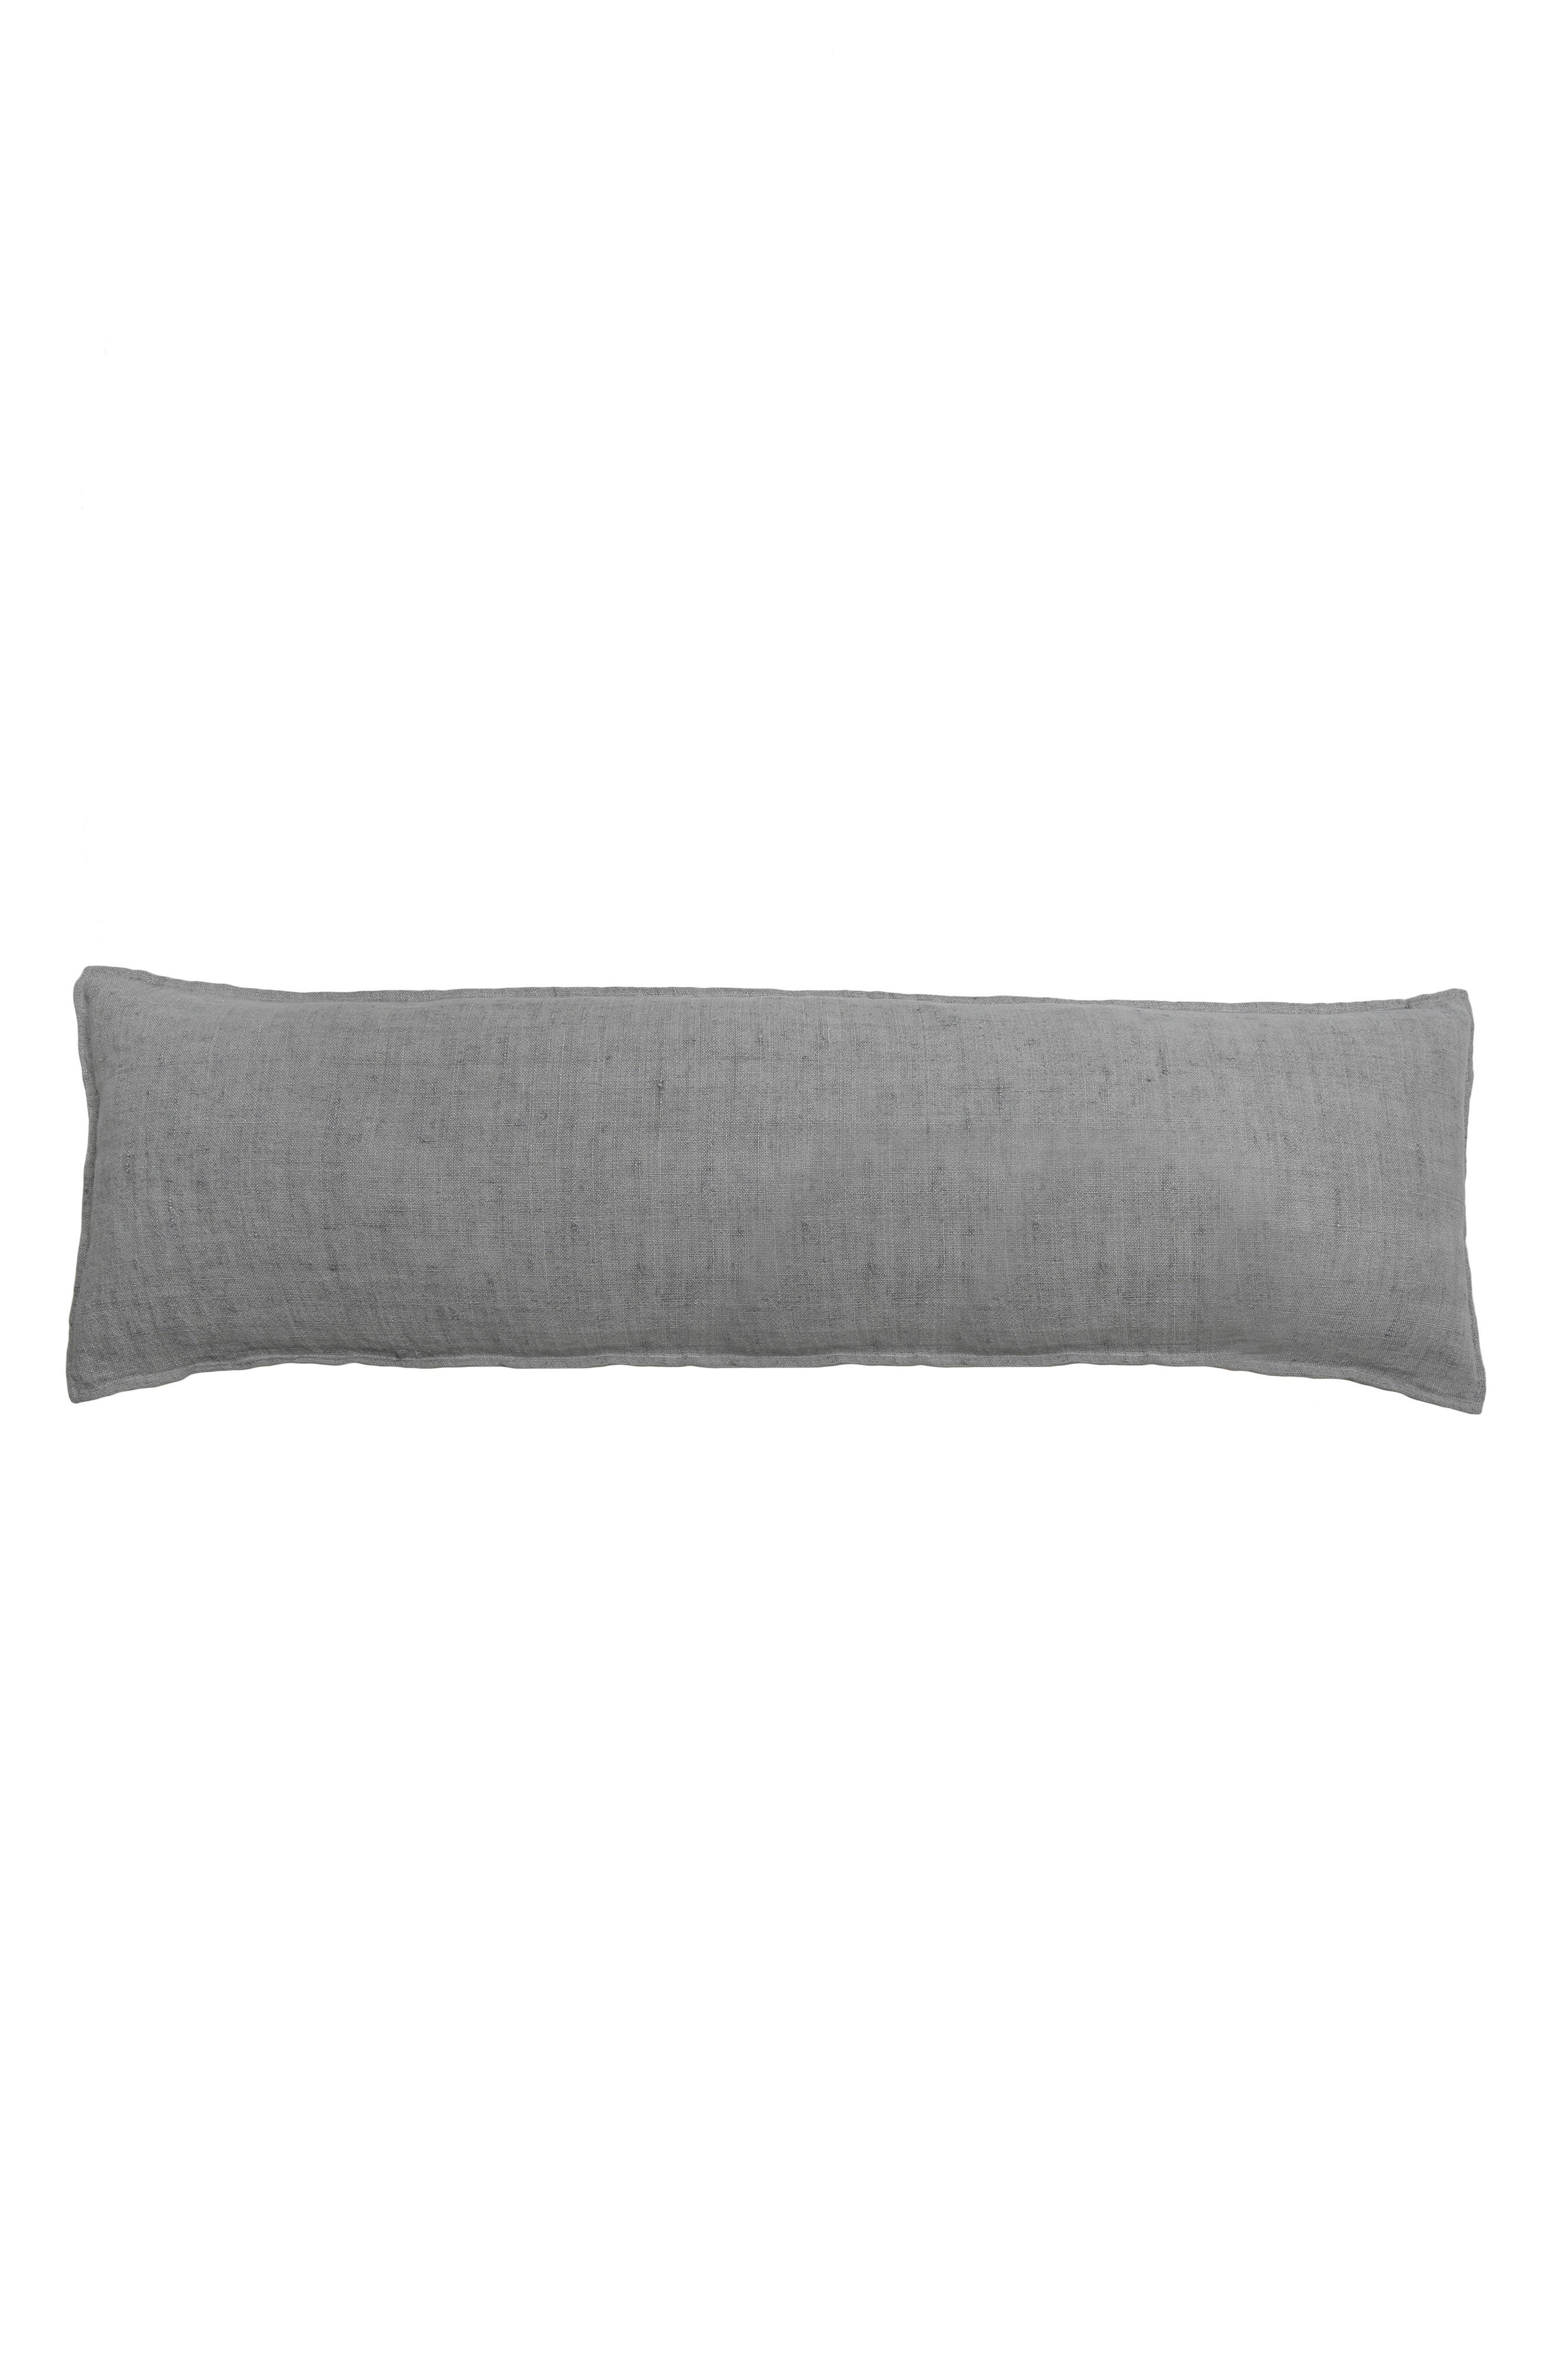 Pom Pom at Home Montauk Body Pillow